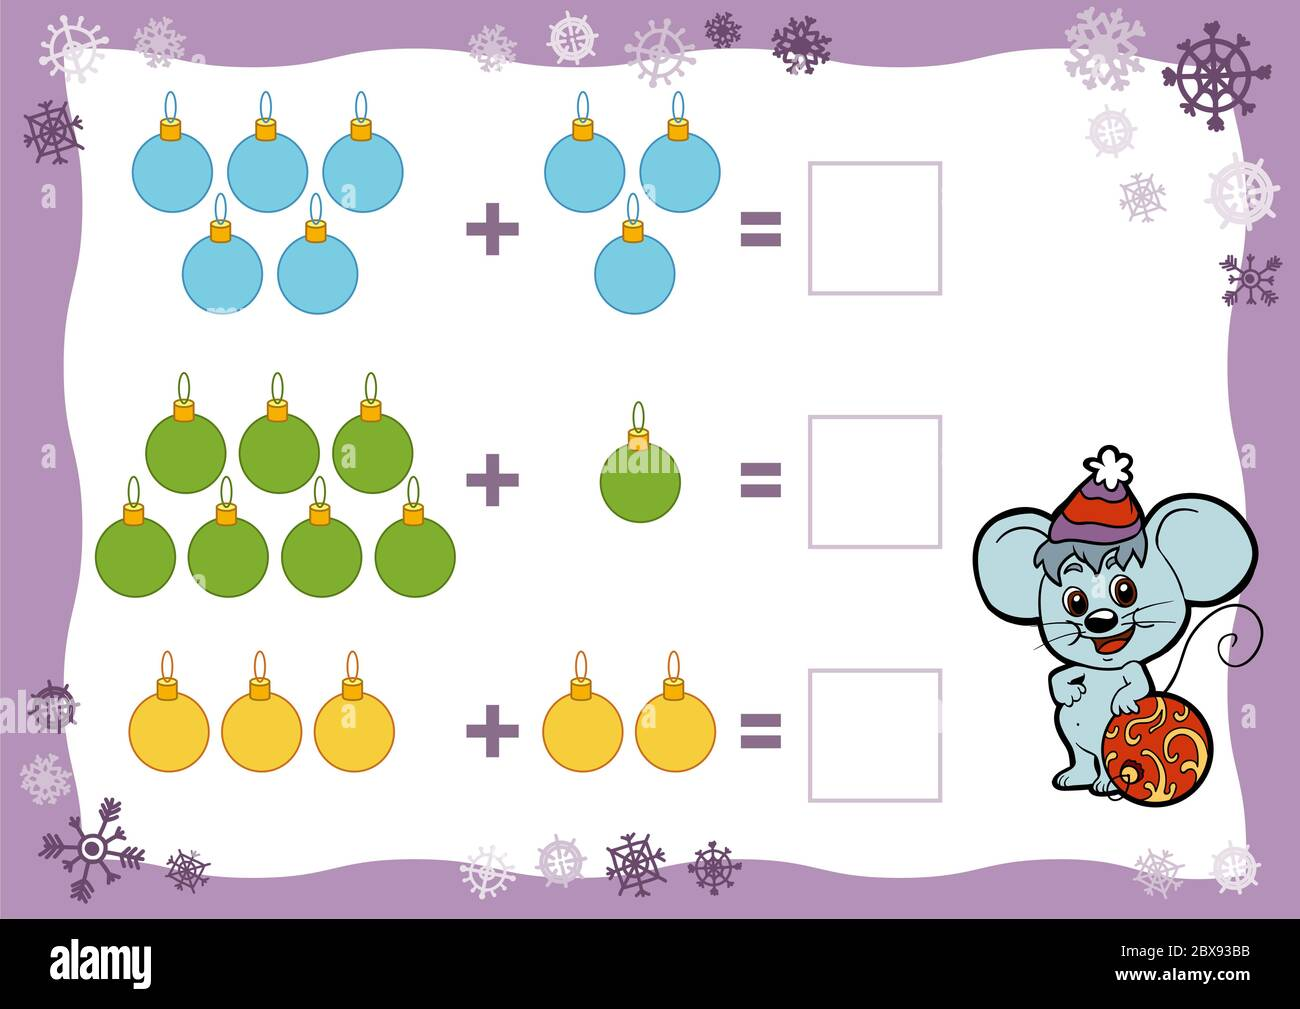 hight resolution of Counting Game for Preschool Children. Addition worksheets. Christmas toys.  Educational a mathematical game. Count the numbers in the picture Stock  Vector Image \u0026 Art - Alamy